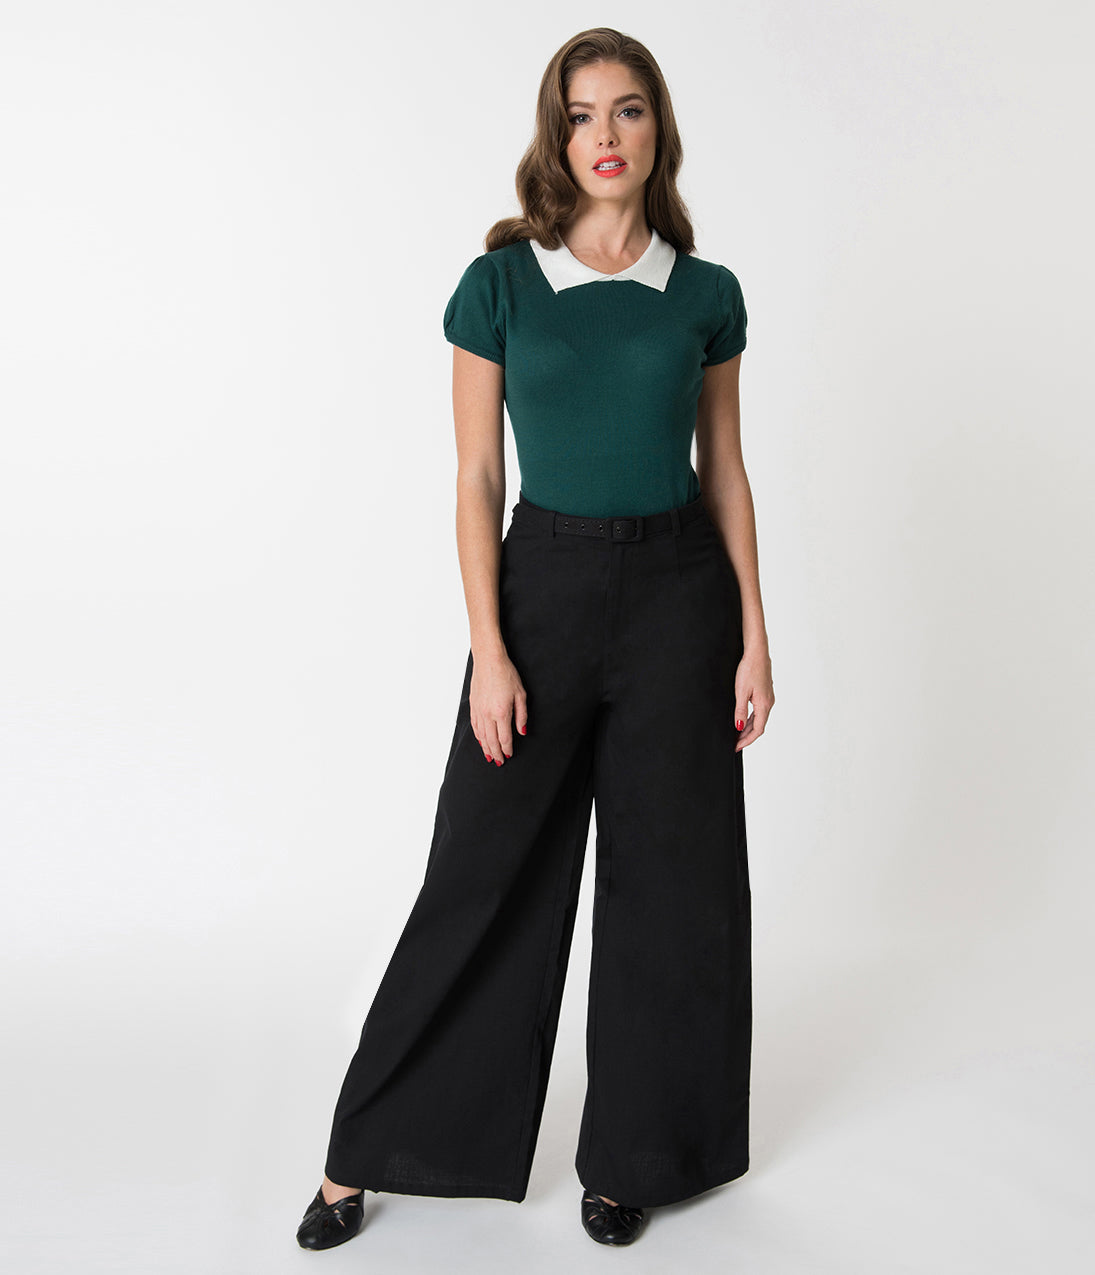 1920s Skirts, Gatsby Skirts, Vintage Pleated Skirts Collectif Black Wide Leg Vicky Cotton Trousers $51.00 AT vintagedancer.com